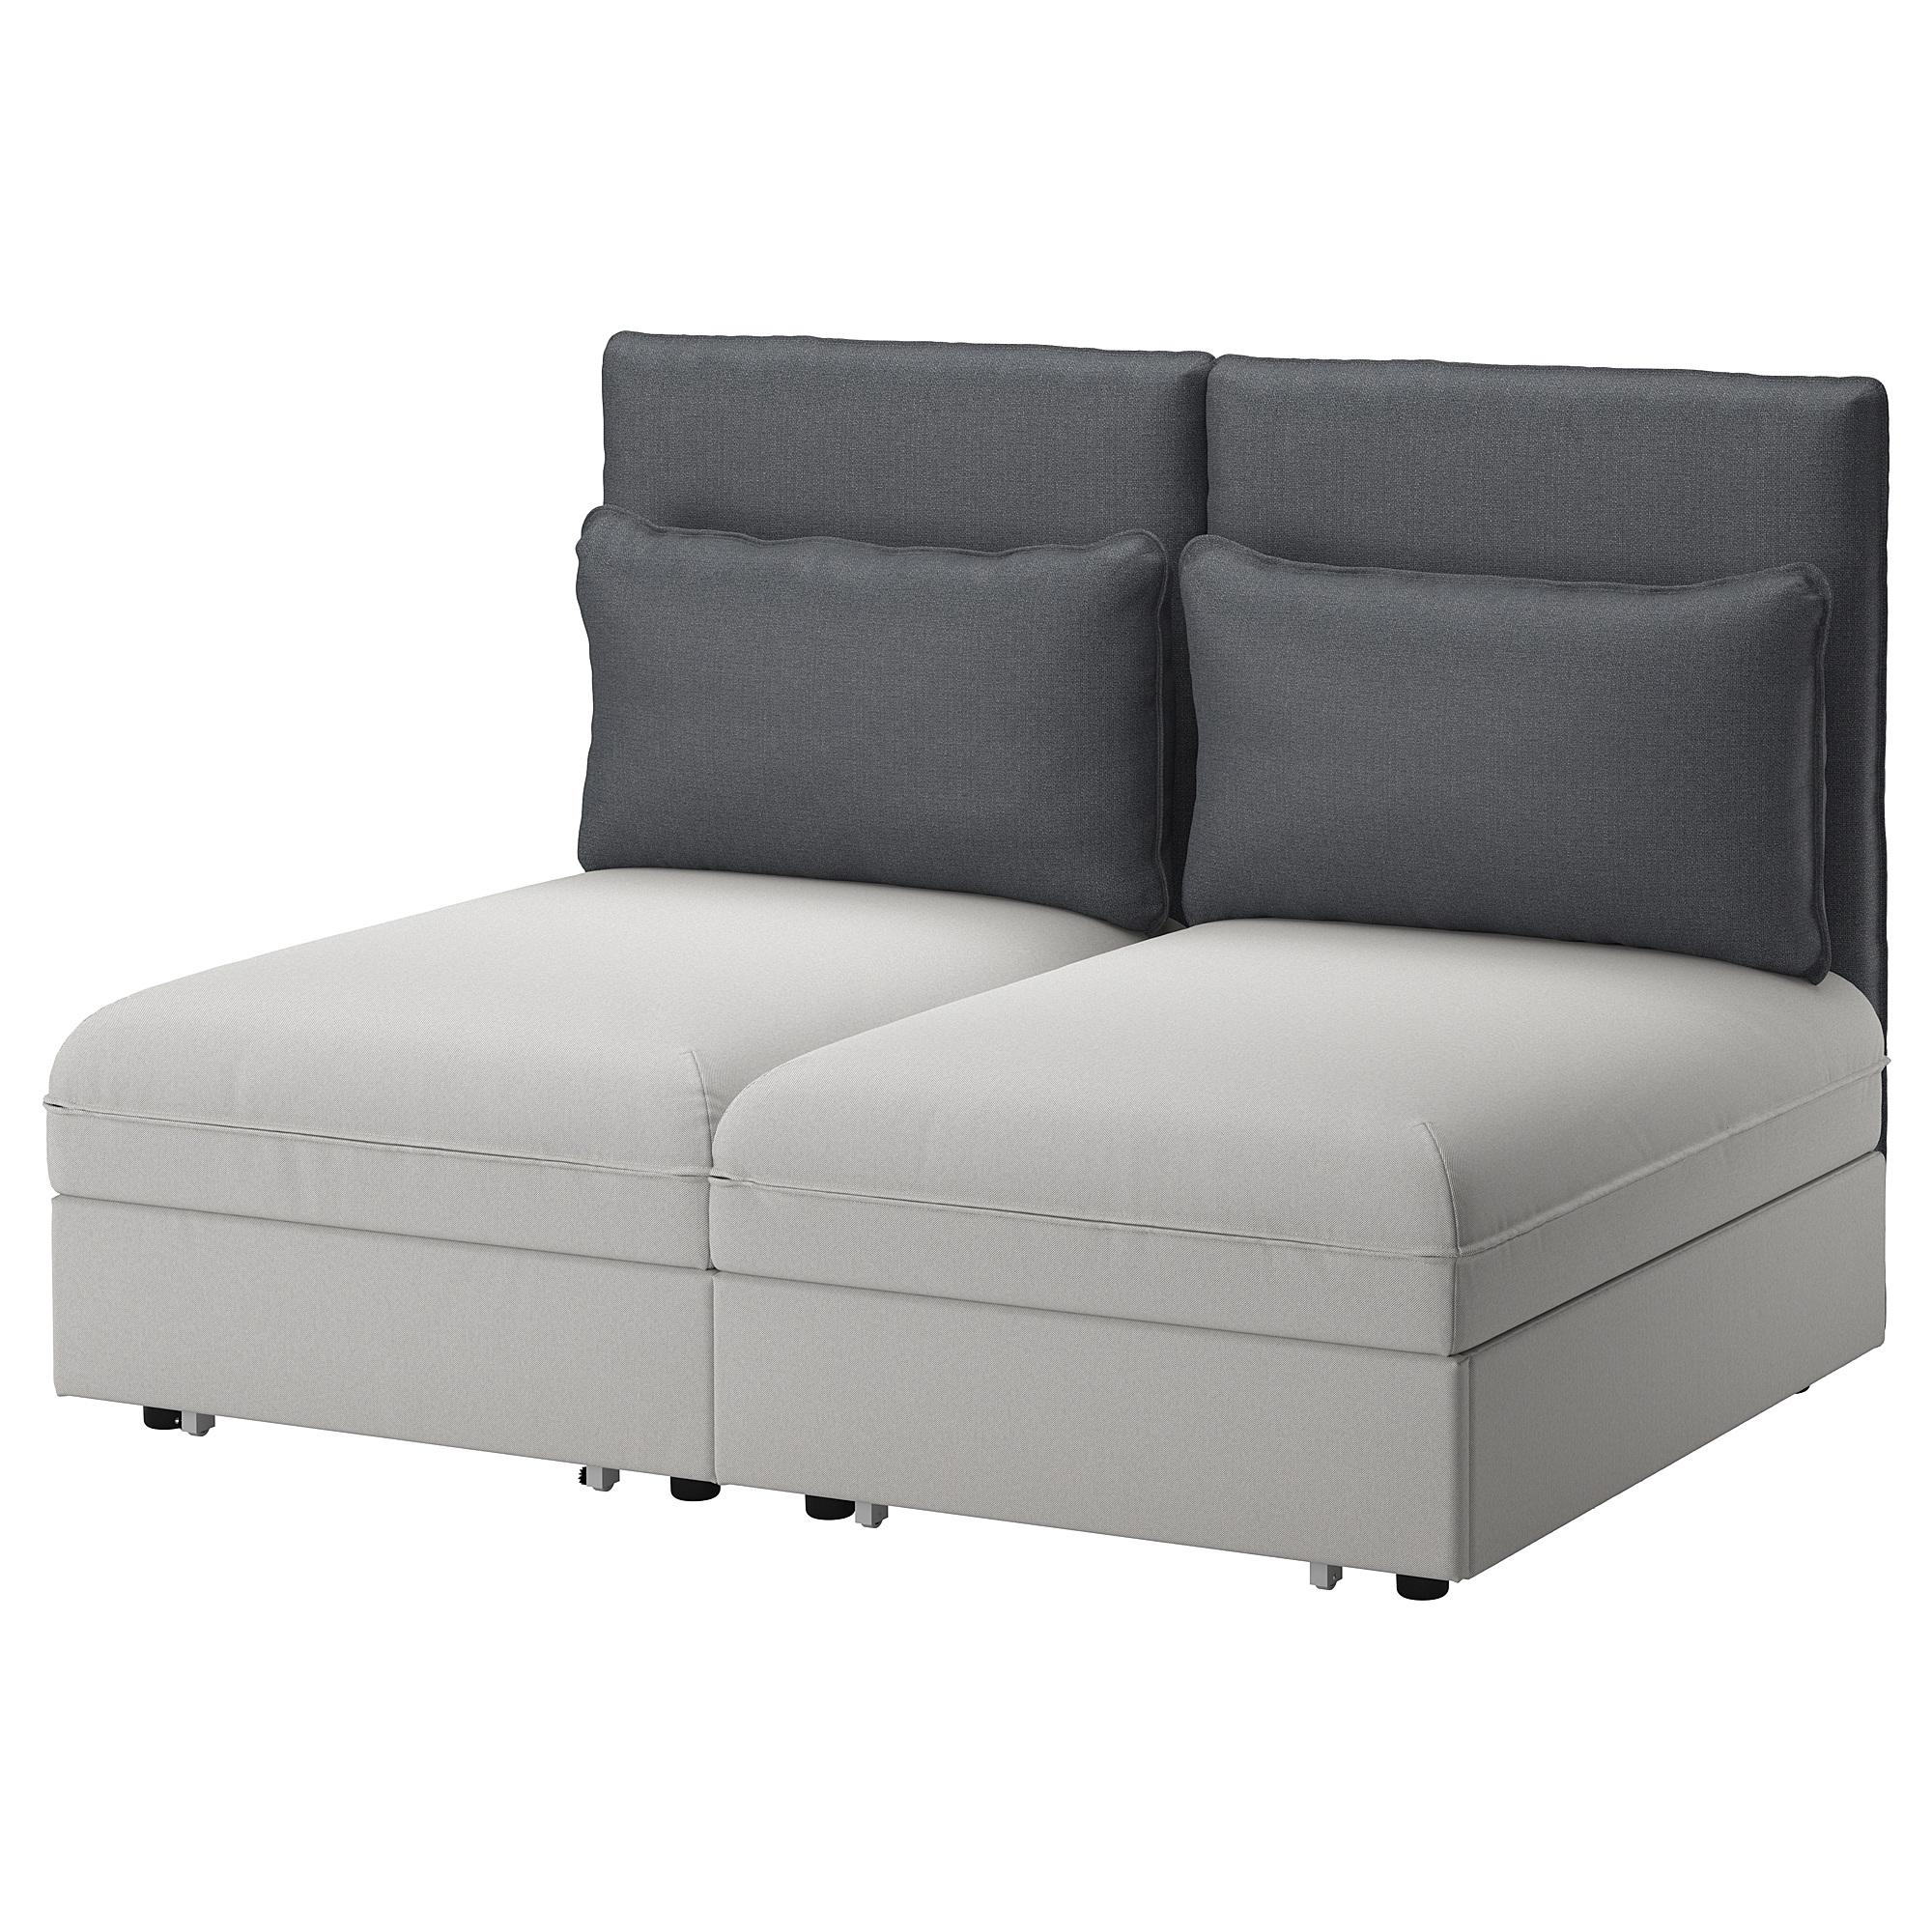 Sofa Beds & Futons – Ikea Intended For Sectional With Recliner And Sleeper (Image 20 of 20)